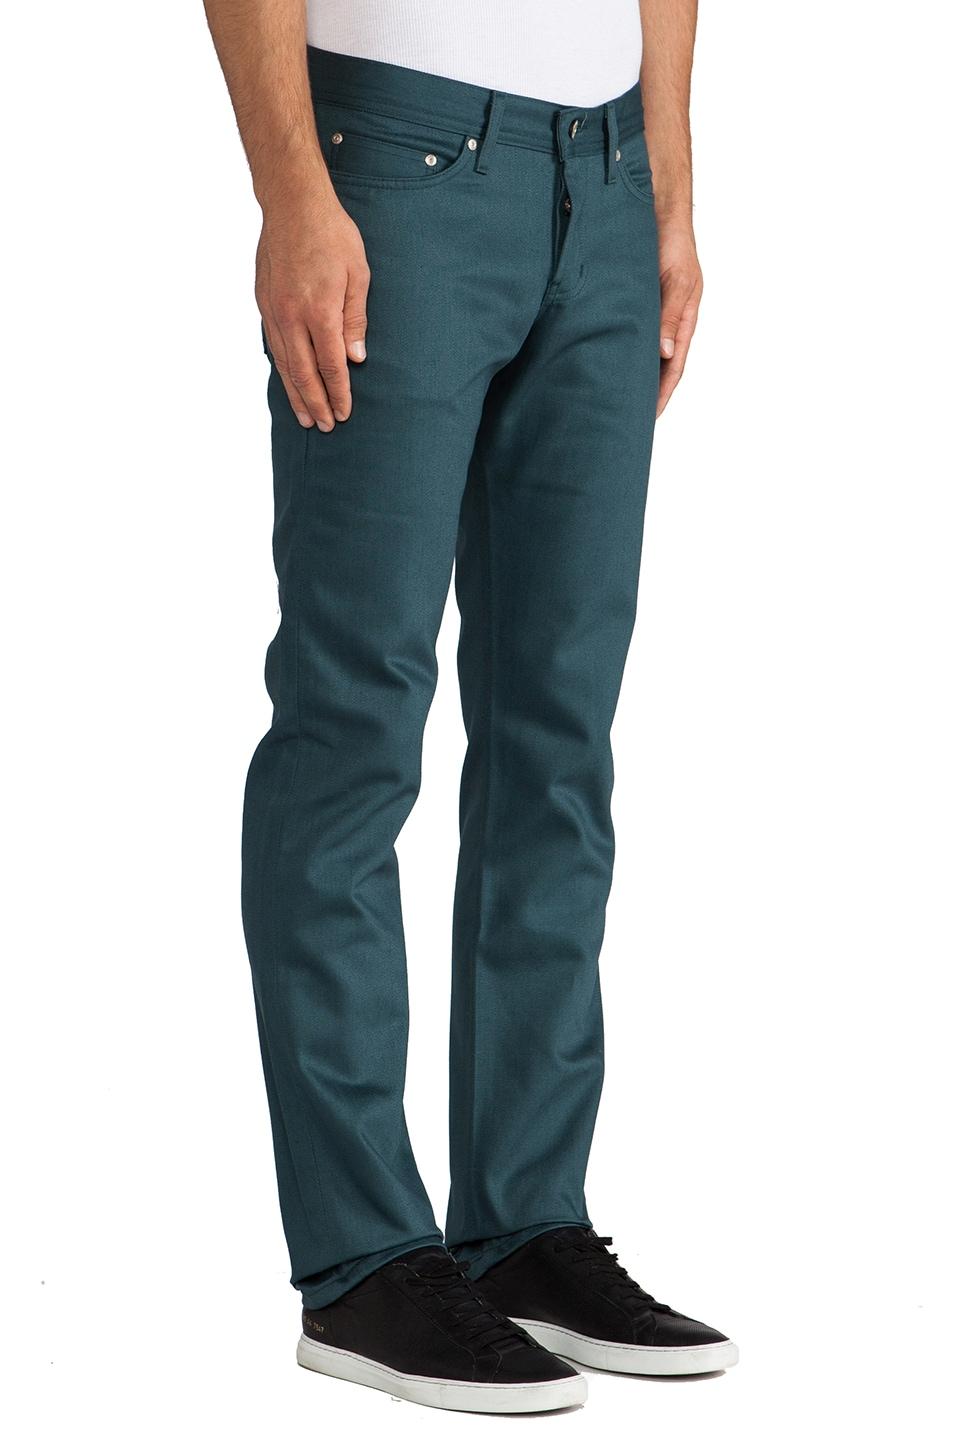 Naked & Famous Denim Weird Guy Petrol Selvedge Chino 12 oz. in Petrol Blue